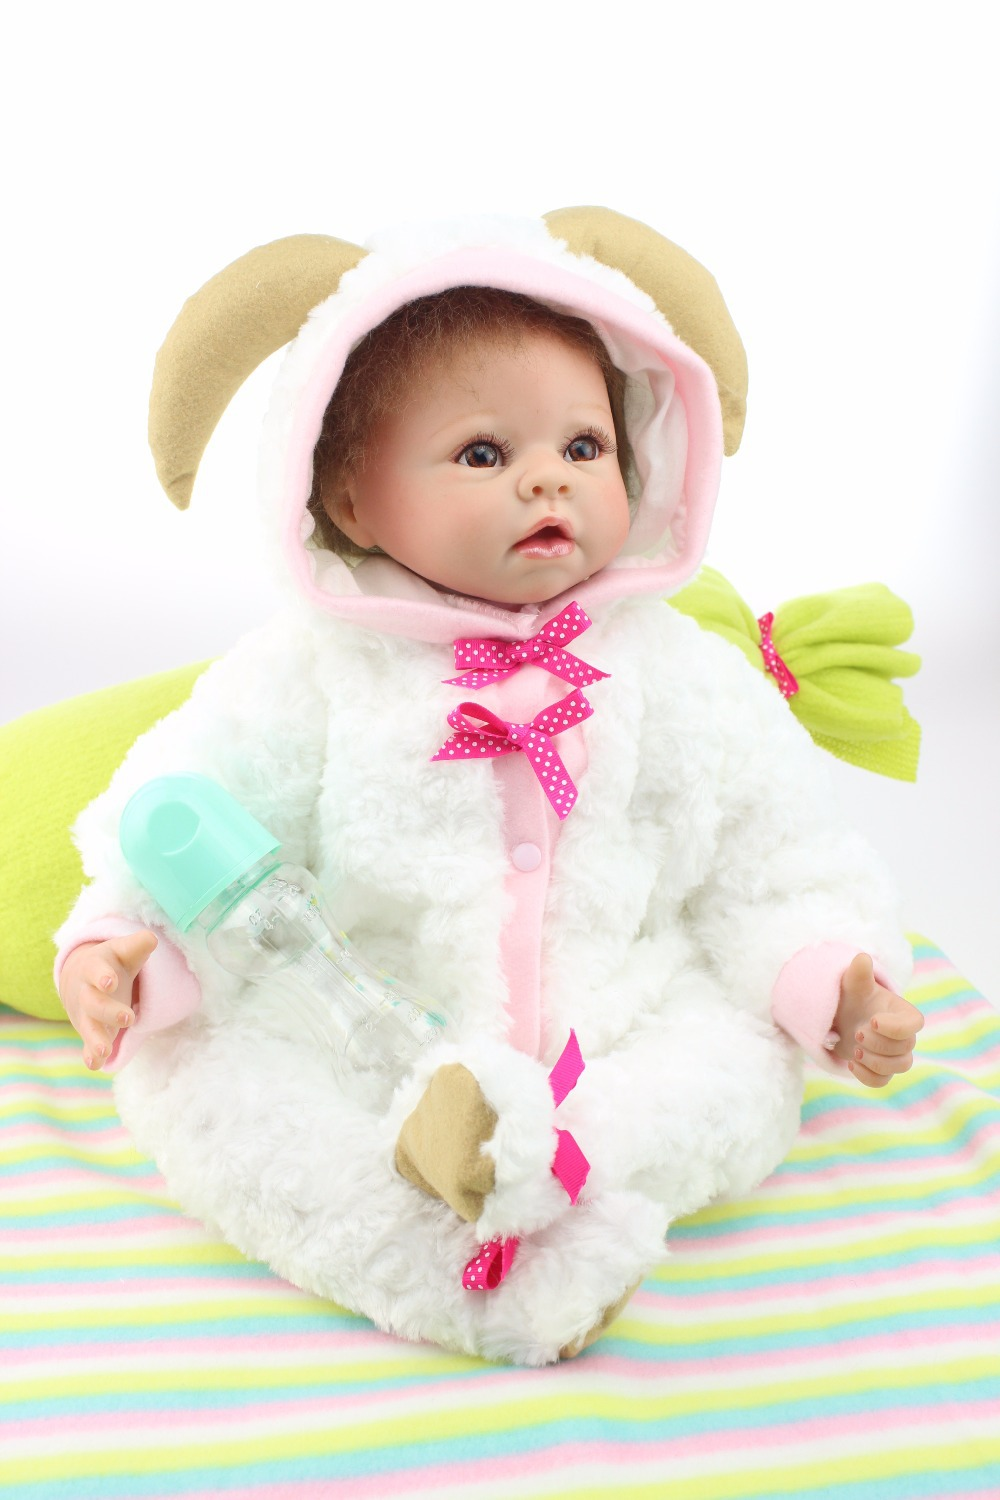 New Design 20 inches newborn baby doll lovely little goat style living doll cloth body toys for your daughter new 23 inches lm230wf5 tld1 1920 x1080 lm230wf5 tld1 lm230wf5tld1 tld2